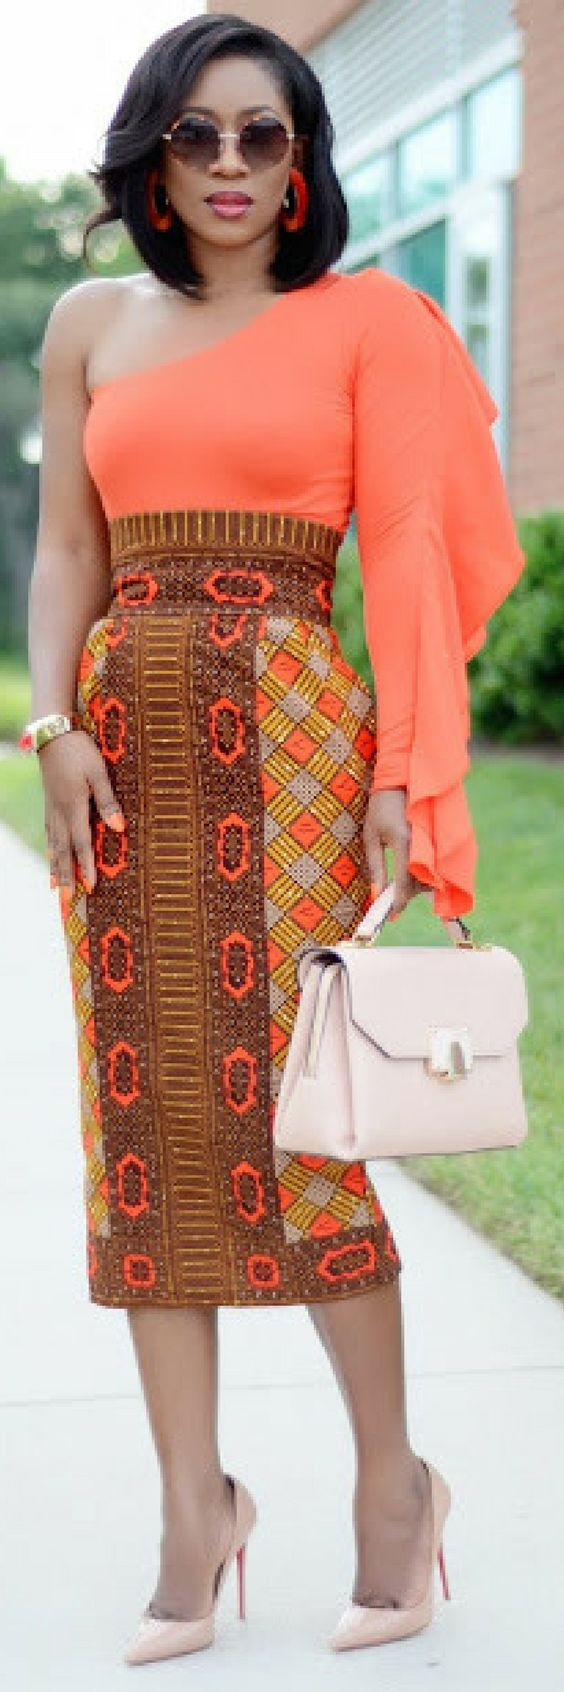 High Waist Pencil Skirt // Summer Outfit Idea By Living My Bliss In Style